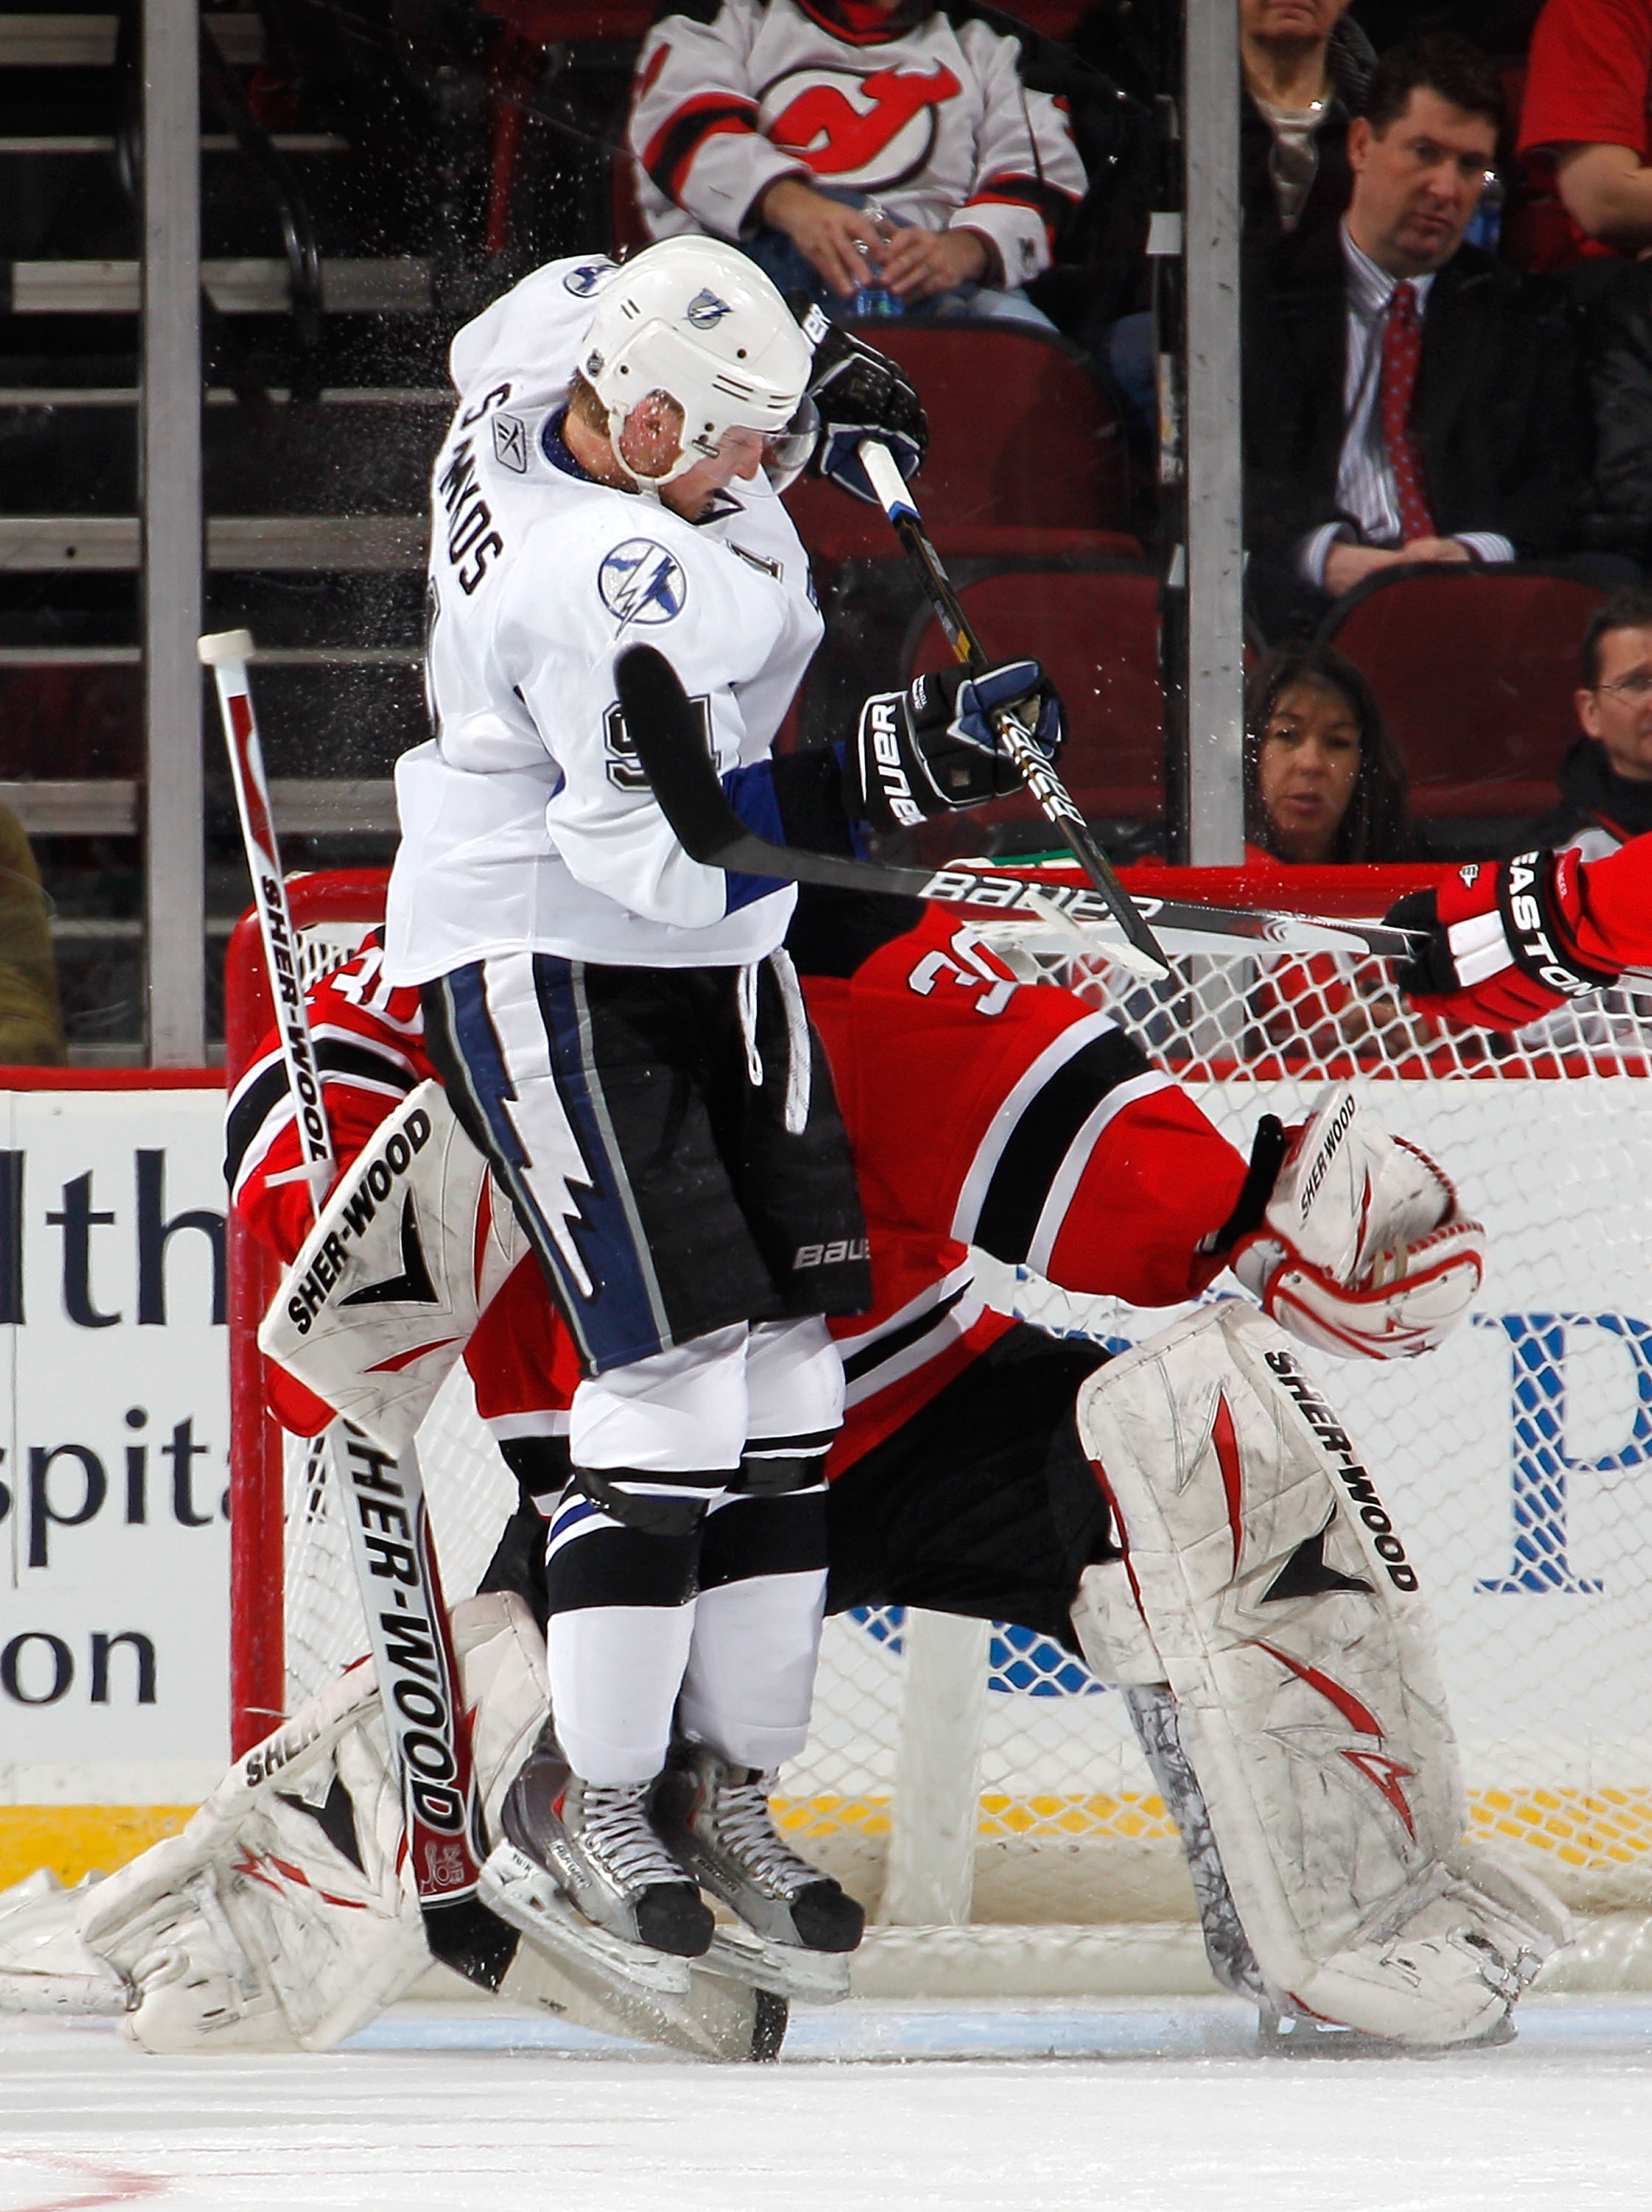 NEWARK, NJ - MARCH 02:  Steven Stamkos #91 of the Tampa Bay Lightning leaps to try to tip in a shot as he crashes into goalie Martin Brodeur #30 of the New Jersey Devils and receives a goaltender interference penalty during the second period of an NHL hoc